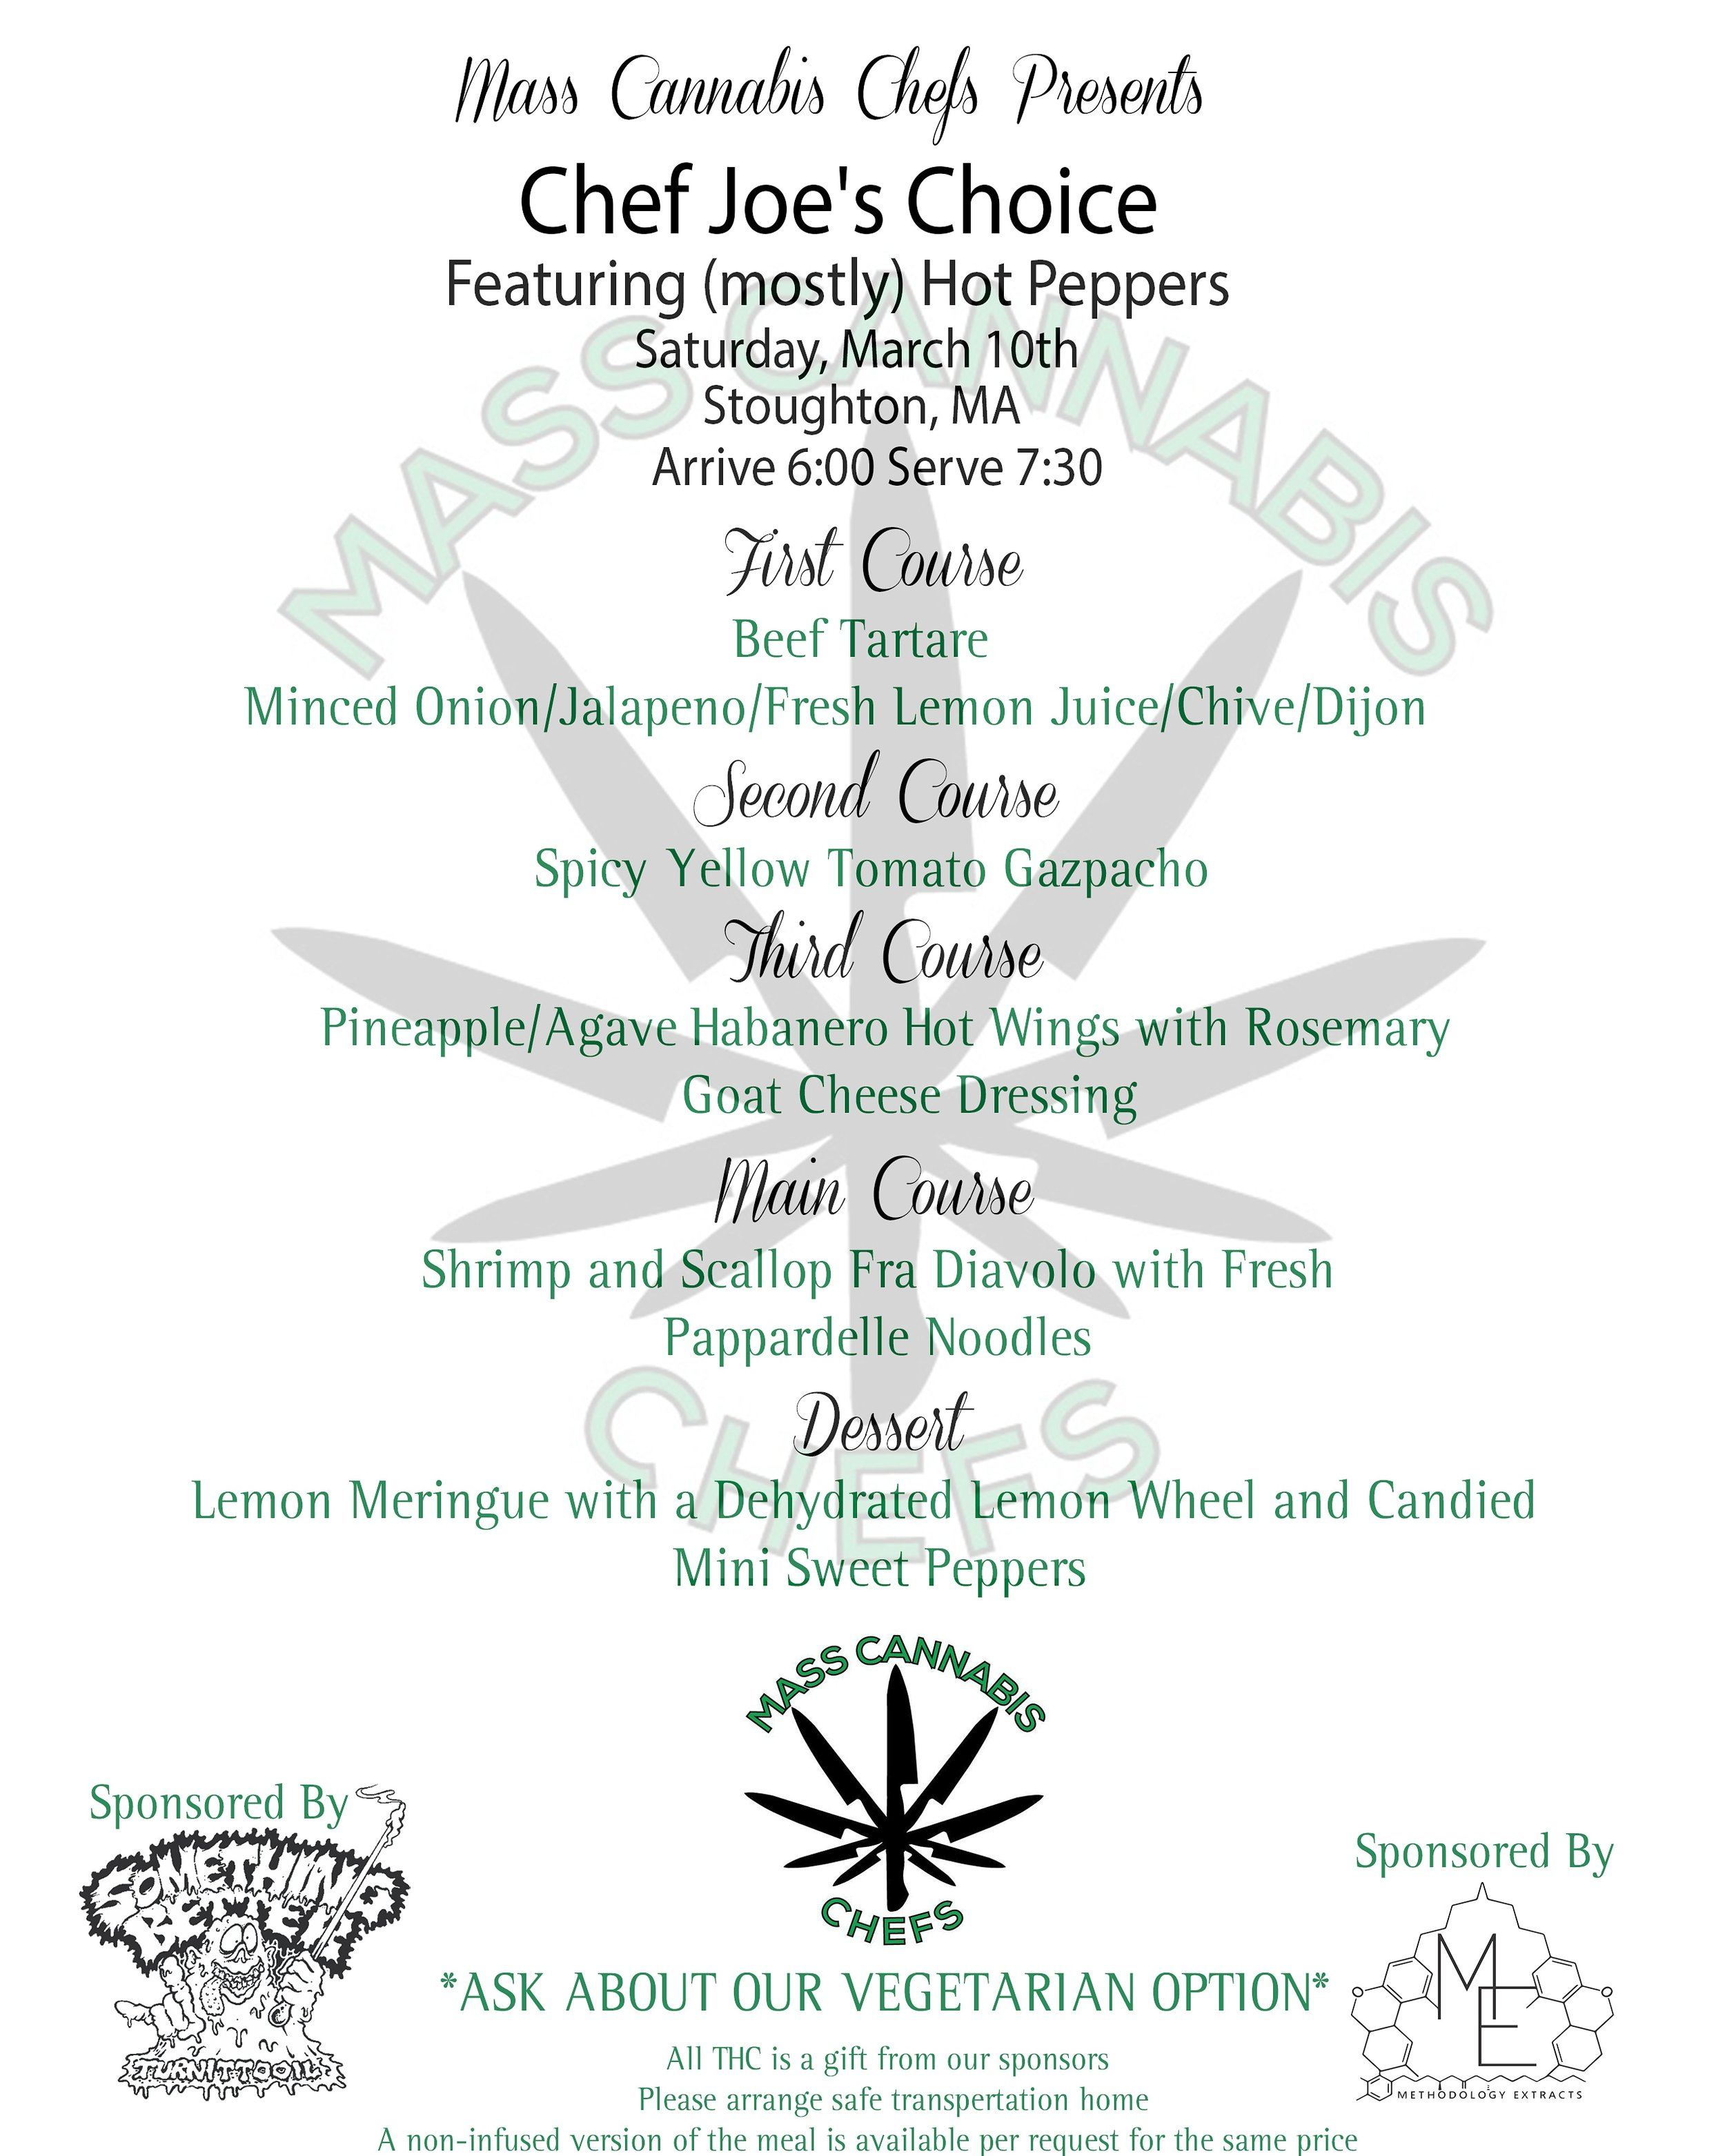 Talking Seaweed is hosting a Mass Cannabis Chefs dinner  - Click on the menu to buy tickets for the fully infused, multi course, gourmet dinner.